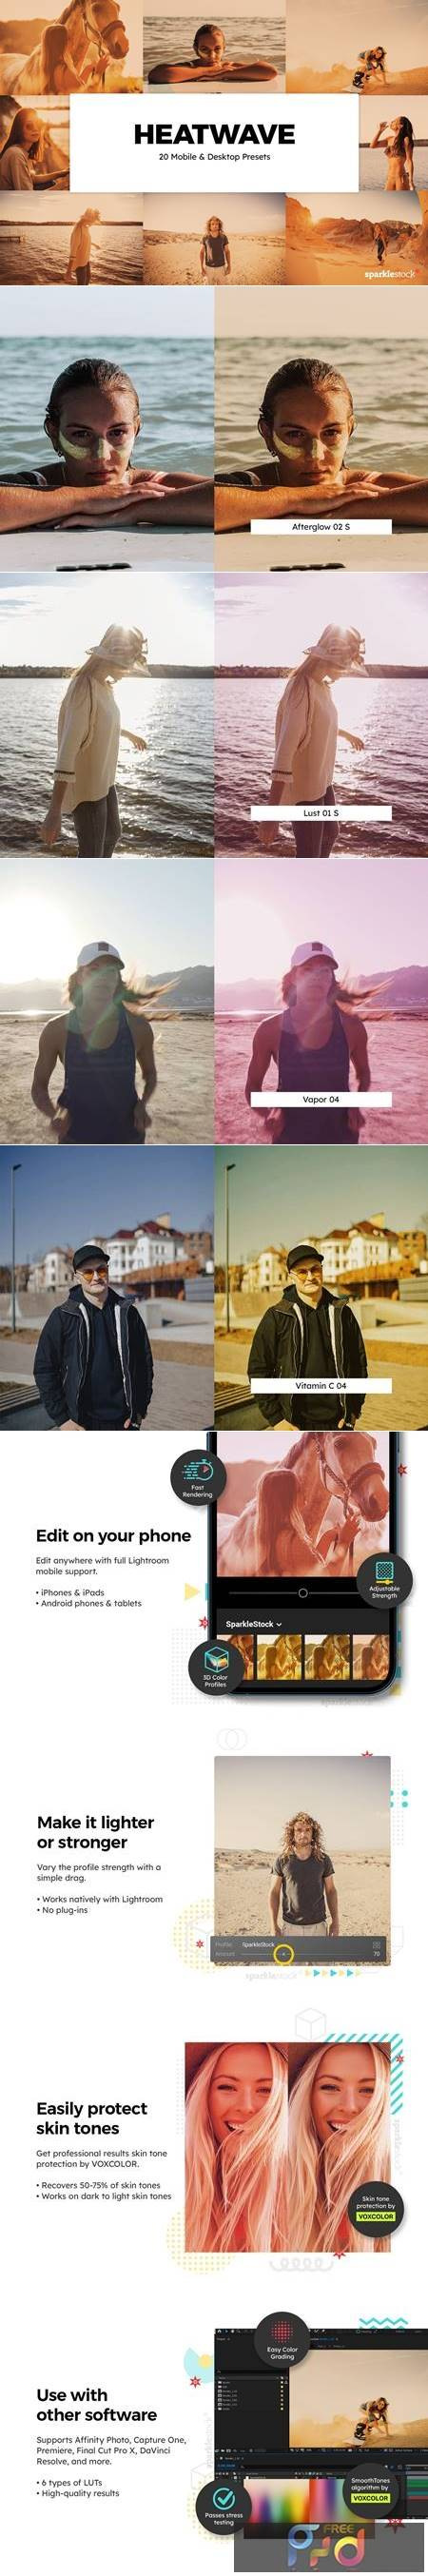 20 Heatwave Lightroom Presets & LUTs Q8E4KNR 1